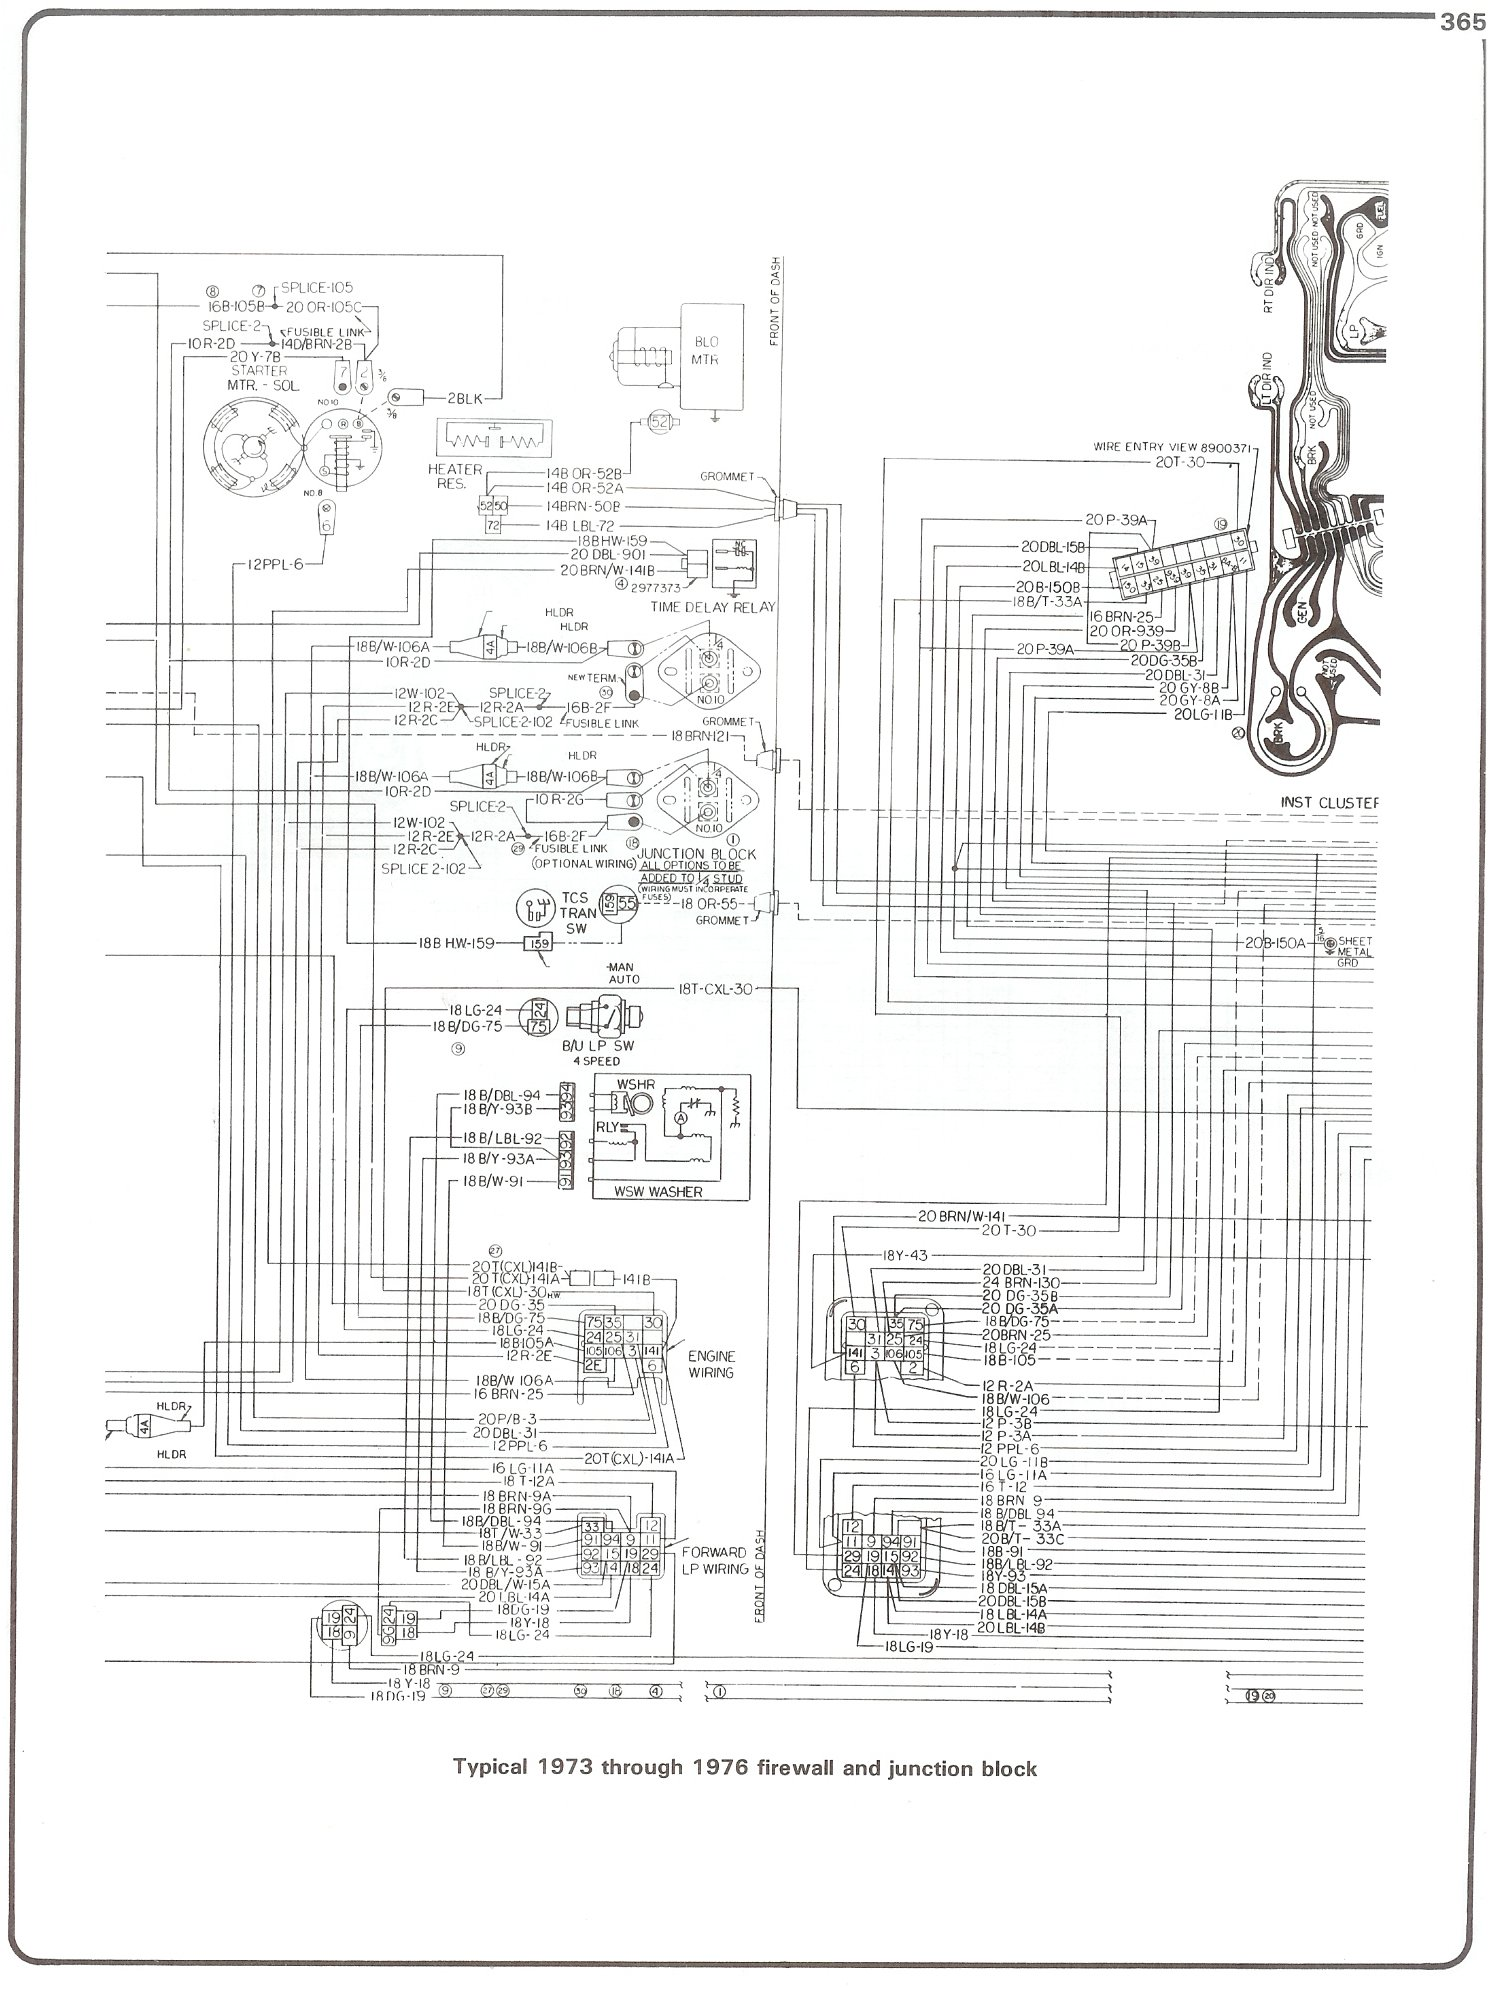 76 chevy engine wiring harness diagram wiring library 1982 chevy s10 durango 1982 chevy s10 firewall wiring diagram [ 1488 x 1991 Pixel ]